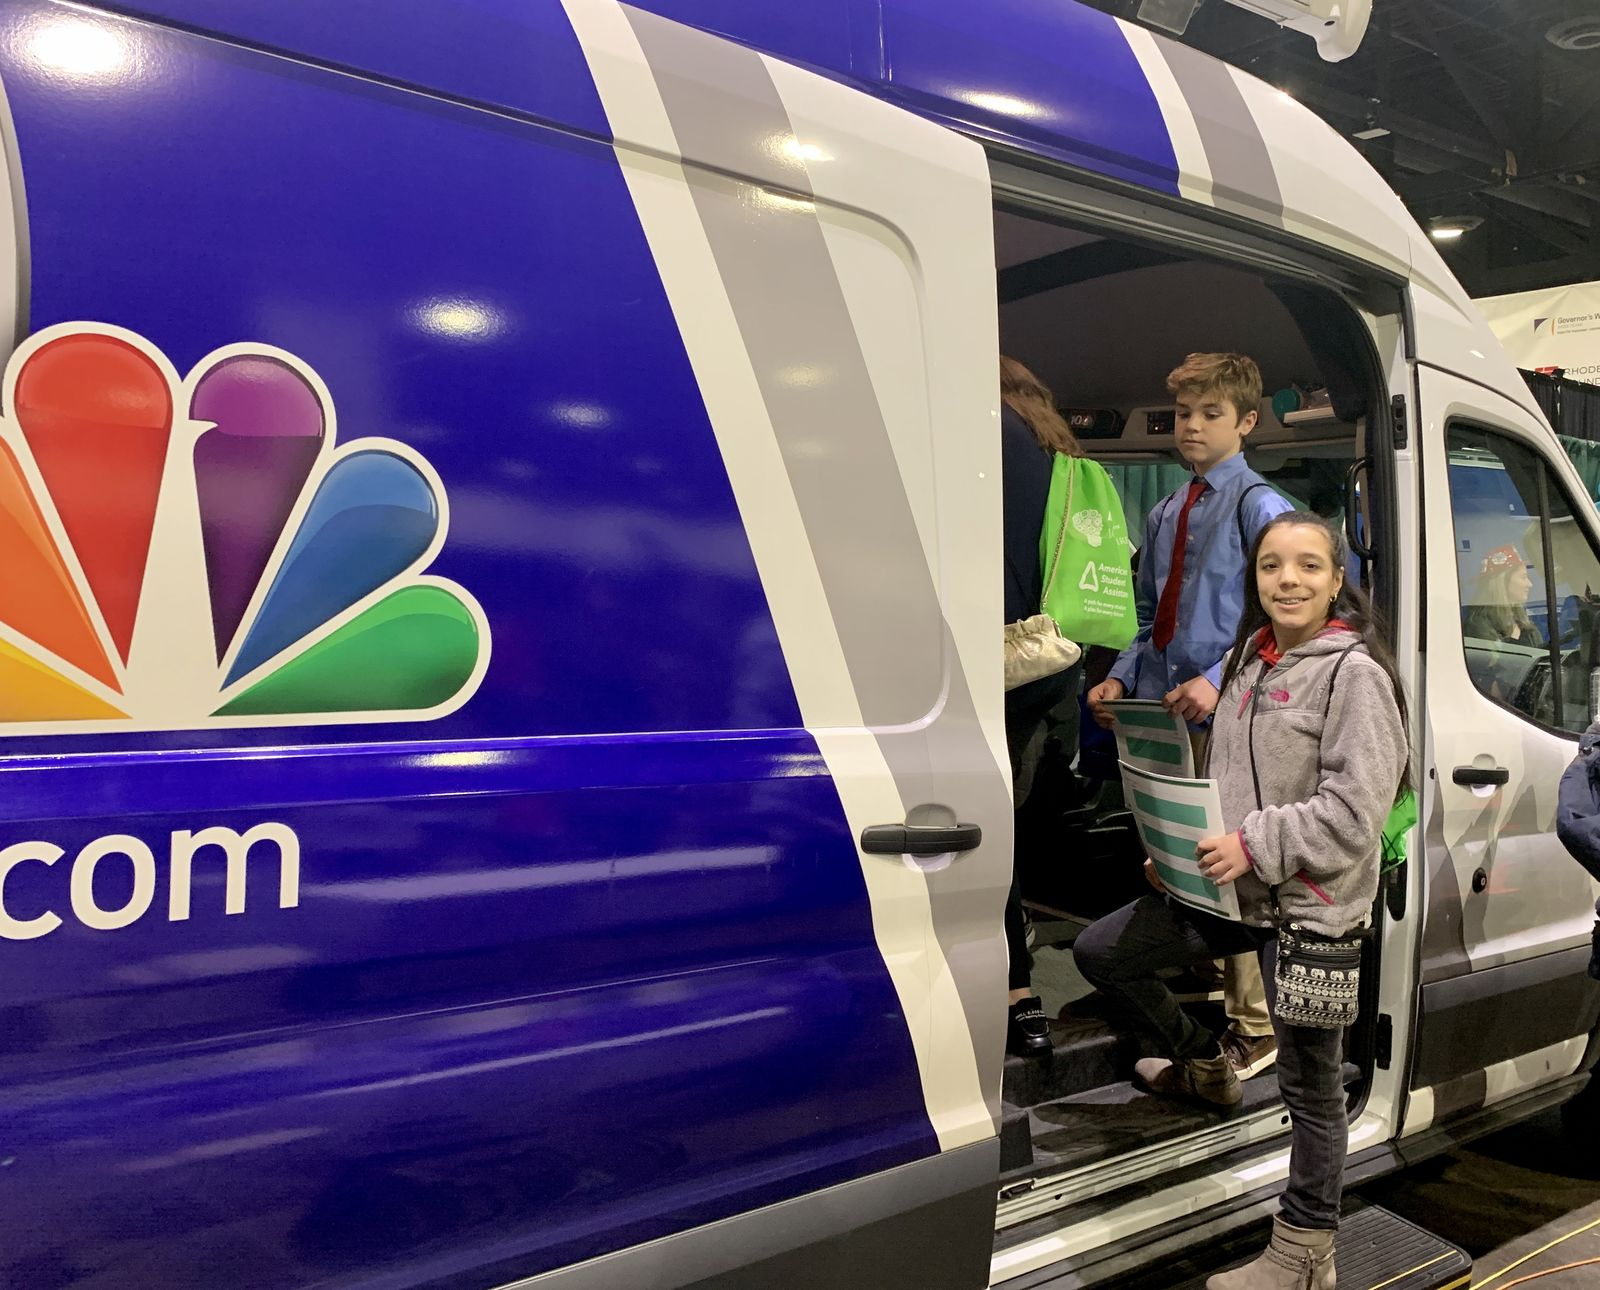 Celine DeSousa, a student at Martin Middle School in Providence, checks out the NBC 10 live truck. (WJAR)